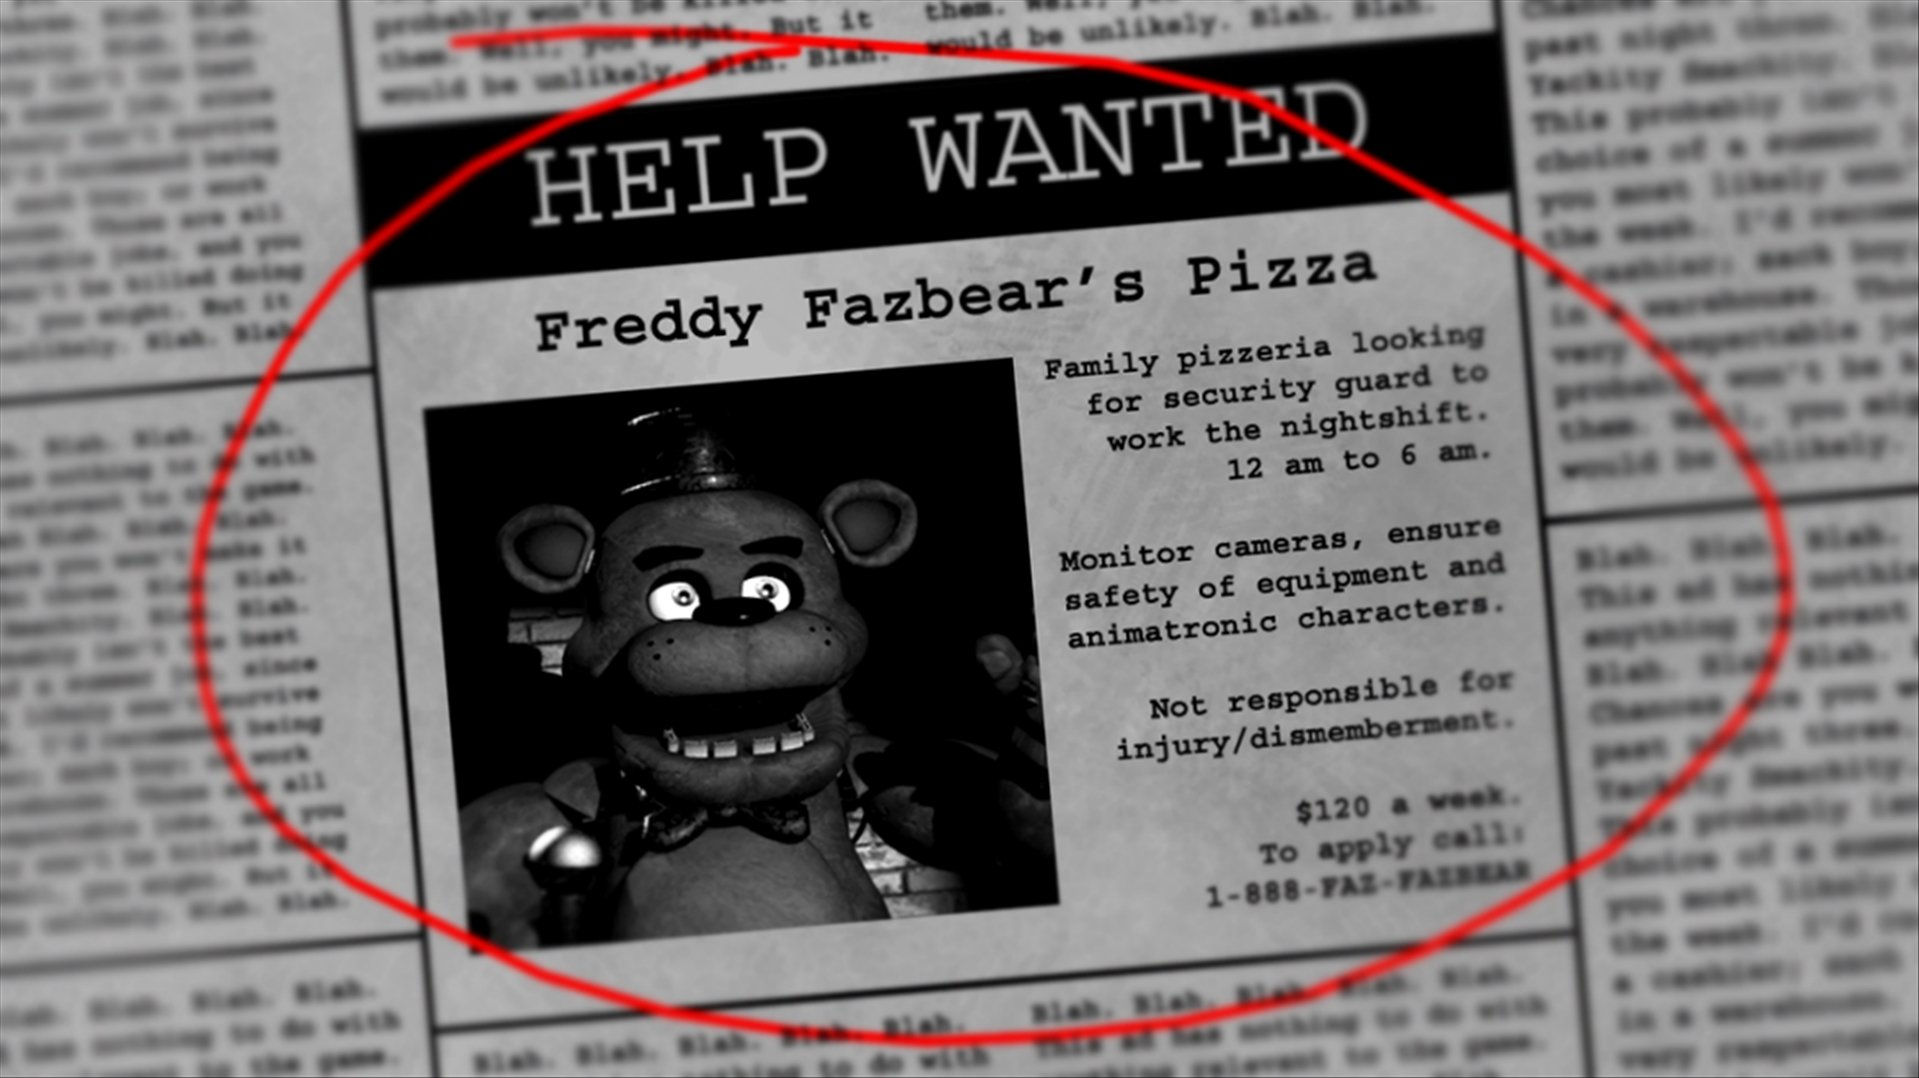 Five nights at freddy s 2 demo android -  Five Nights At Freddy S Image 2 Thumbnail